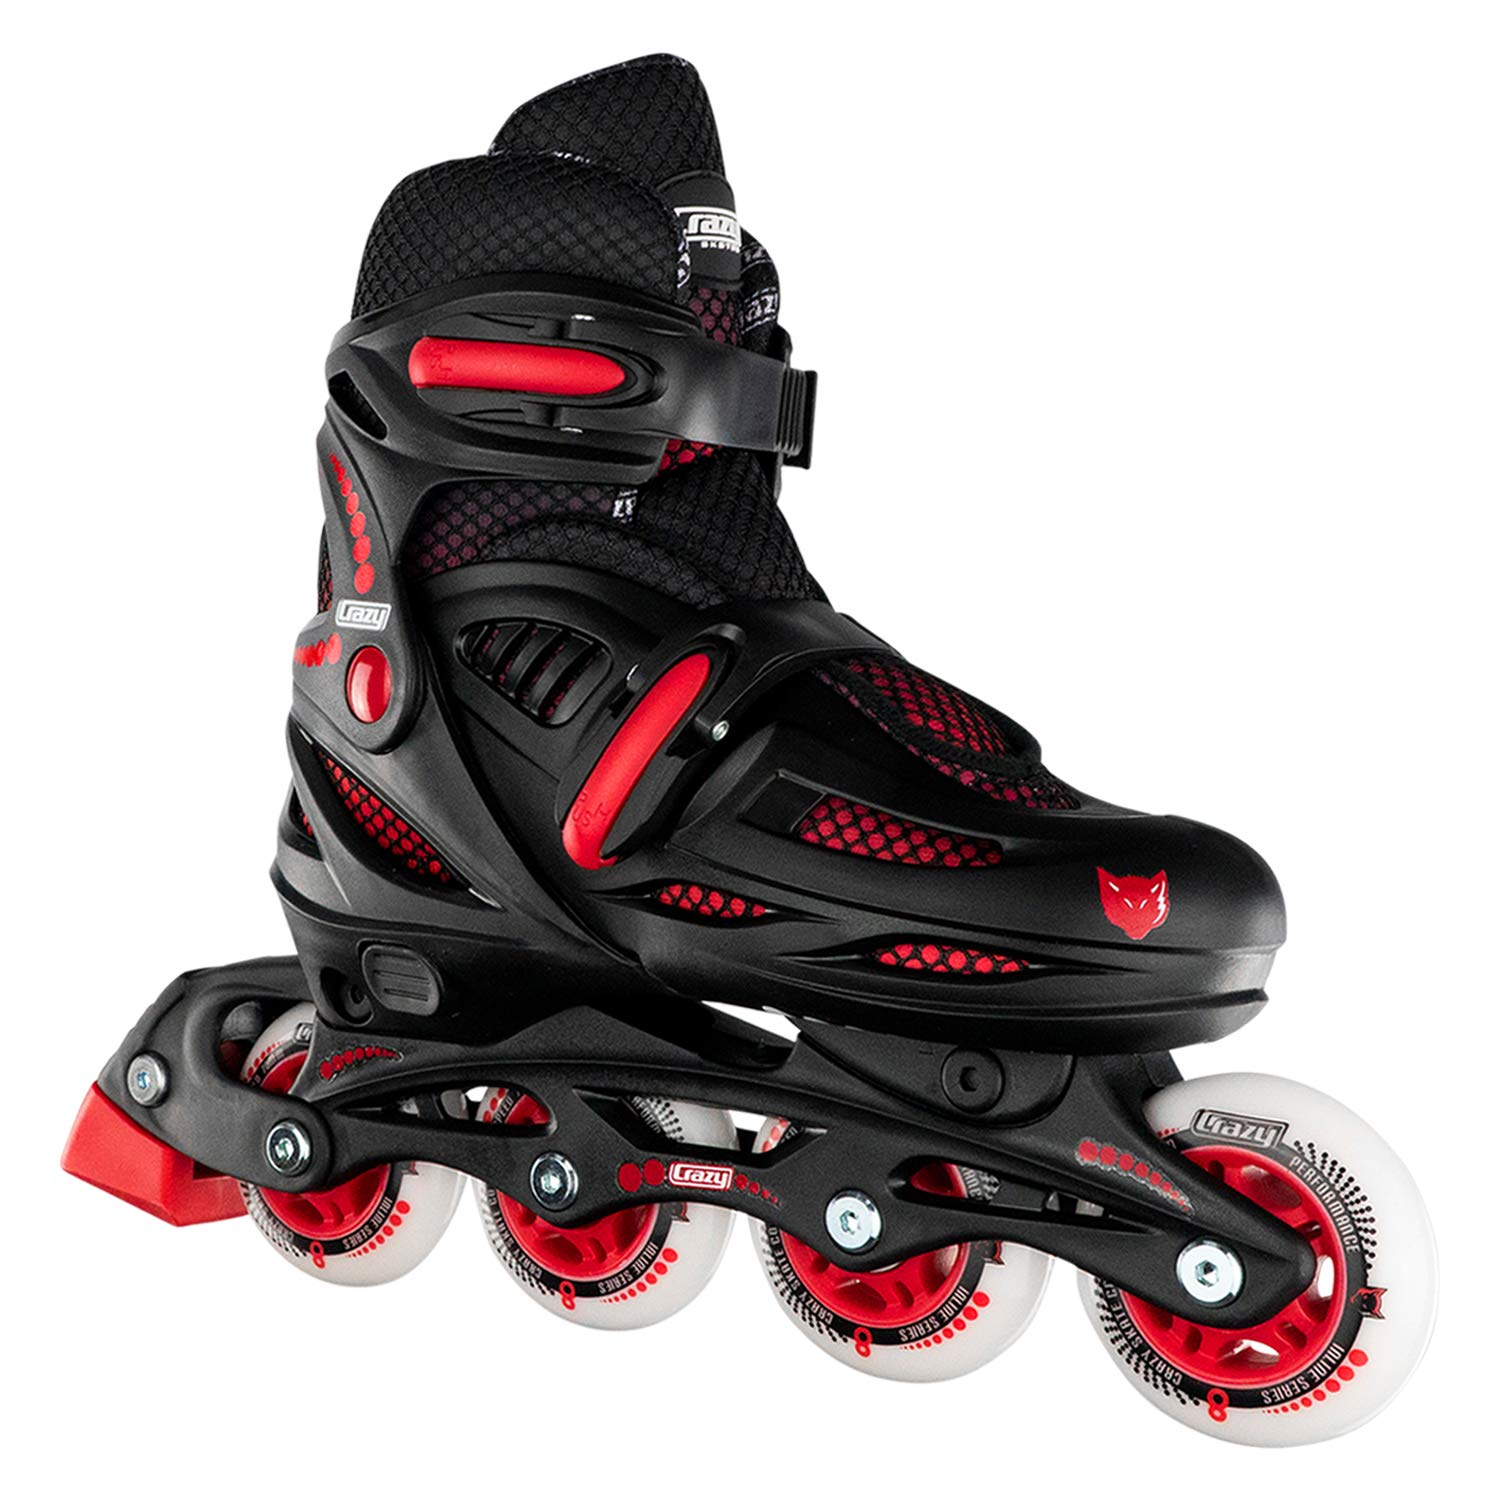 Crazy Skates Adjustable Inline Skates for Boys - Beginner Kids Roller Blades